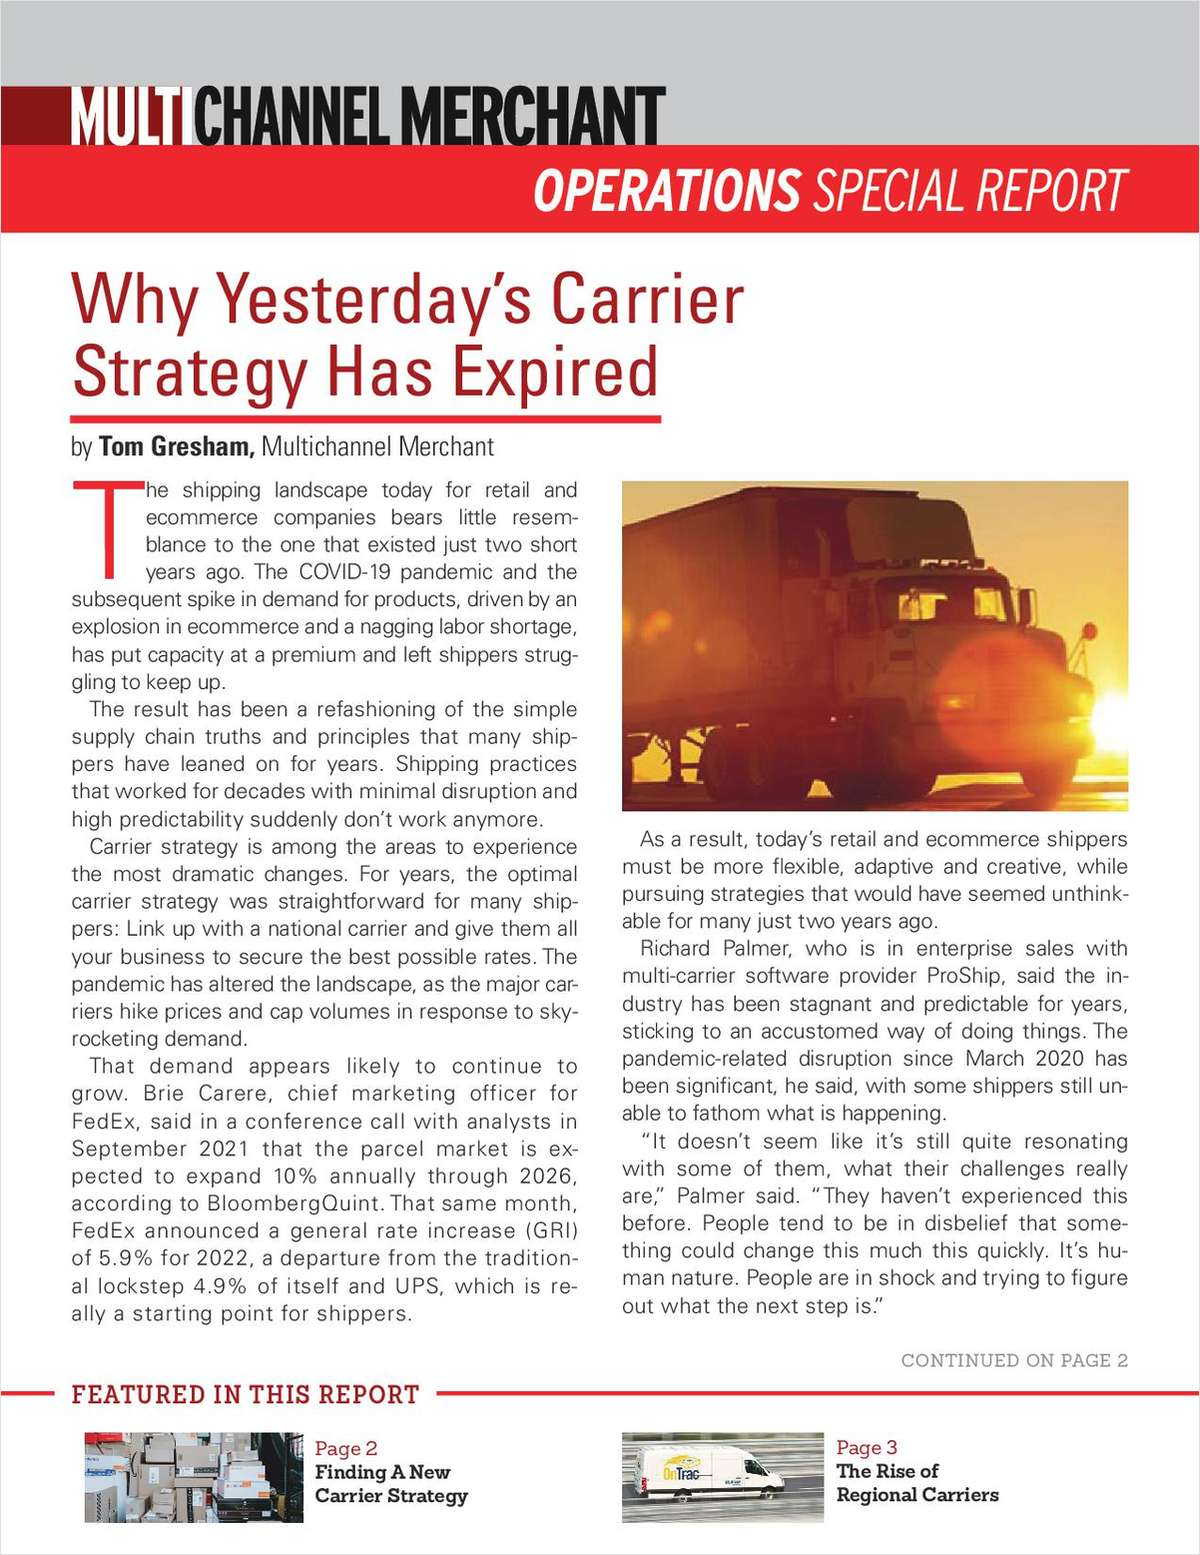 Why Yesterday's Carrier Strategy Has Expired